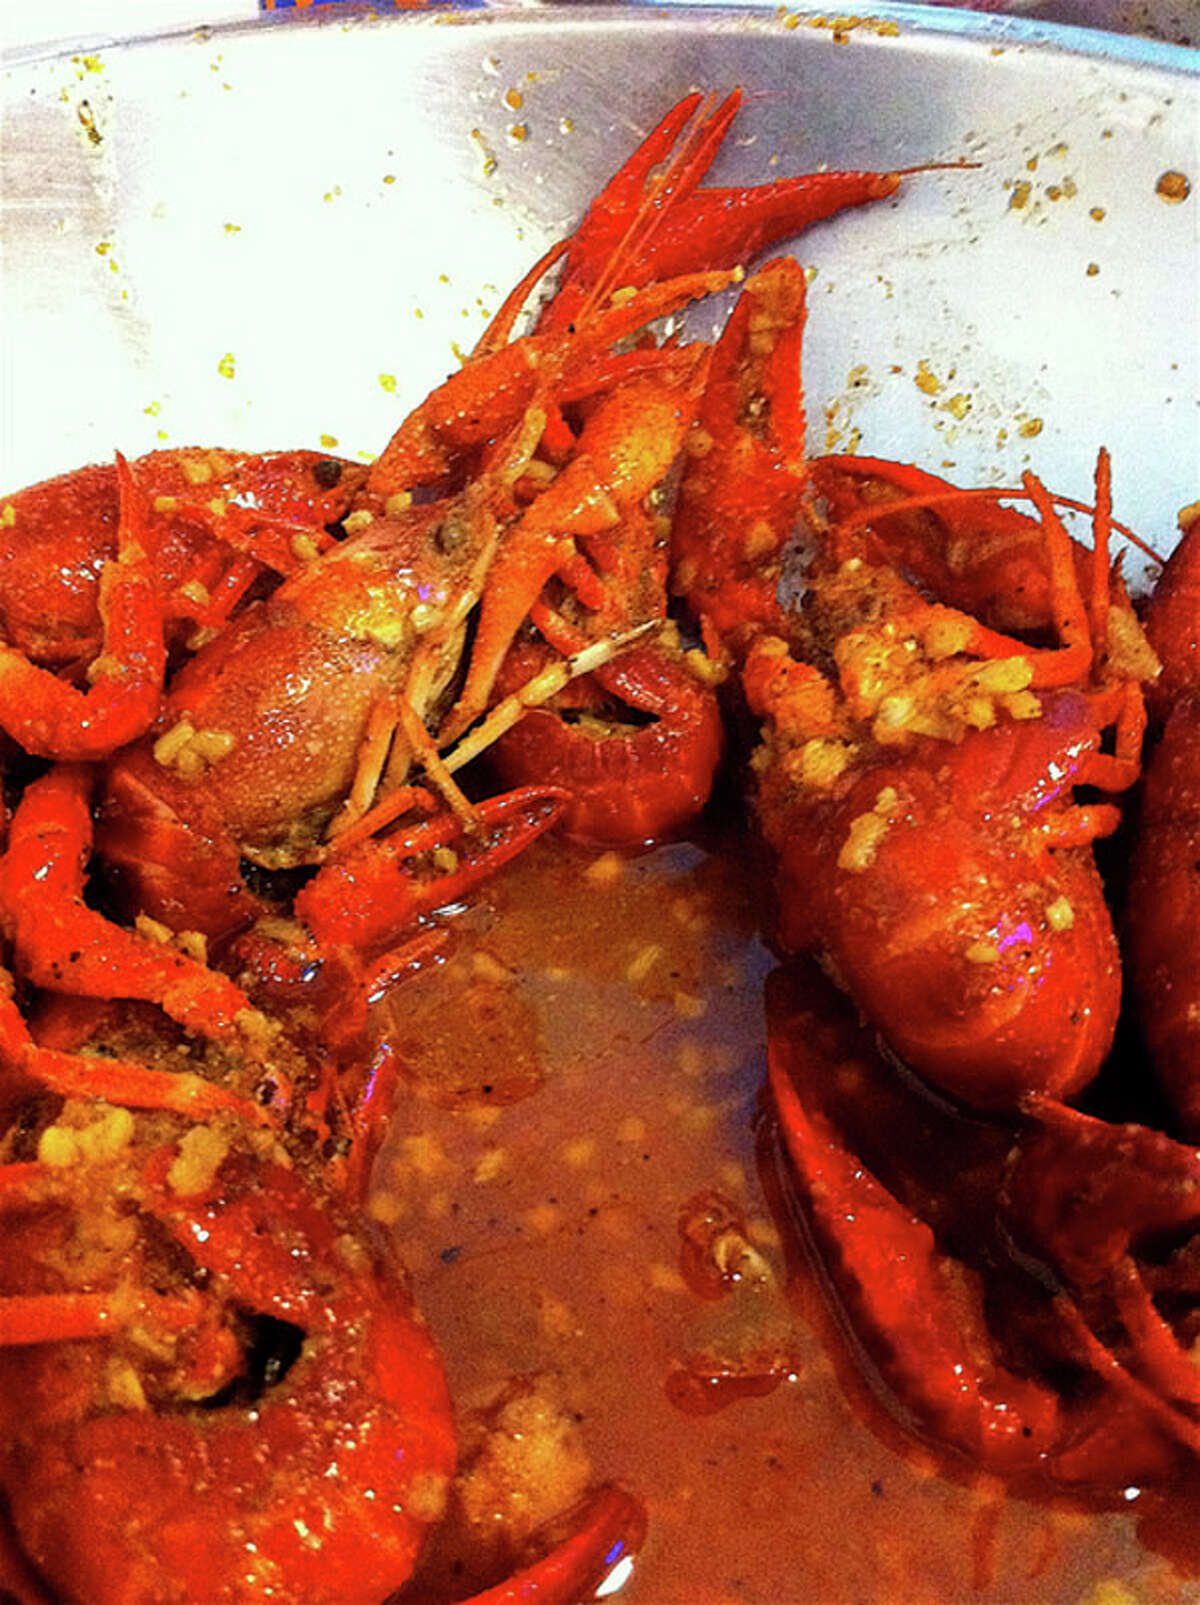 Crawfish boiled in garlicky, buttery, oniony, red-peppered broth